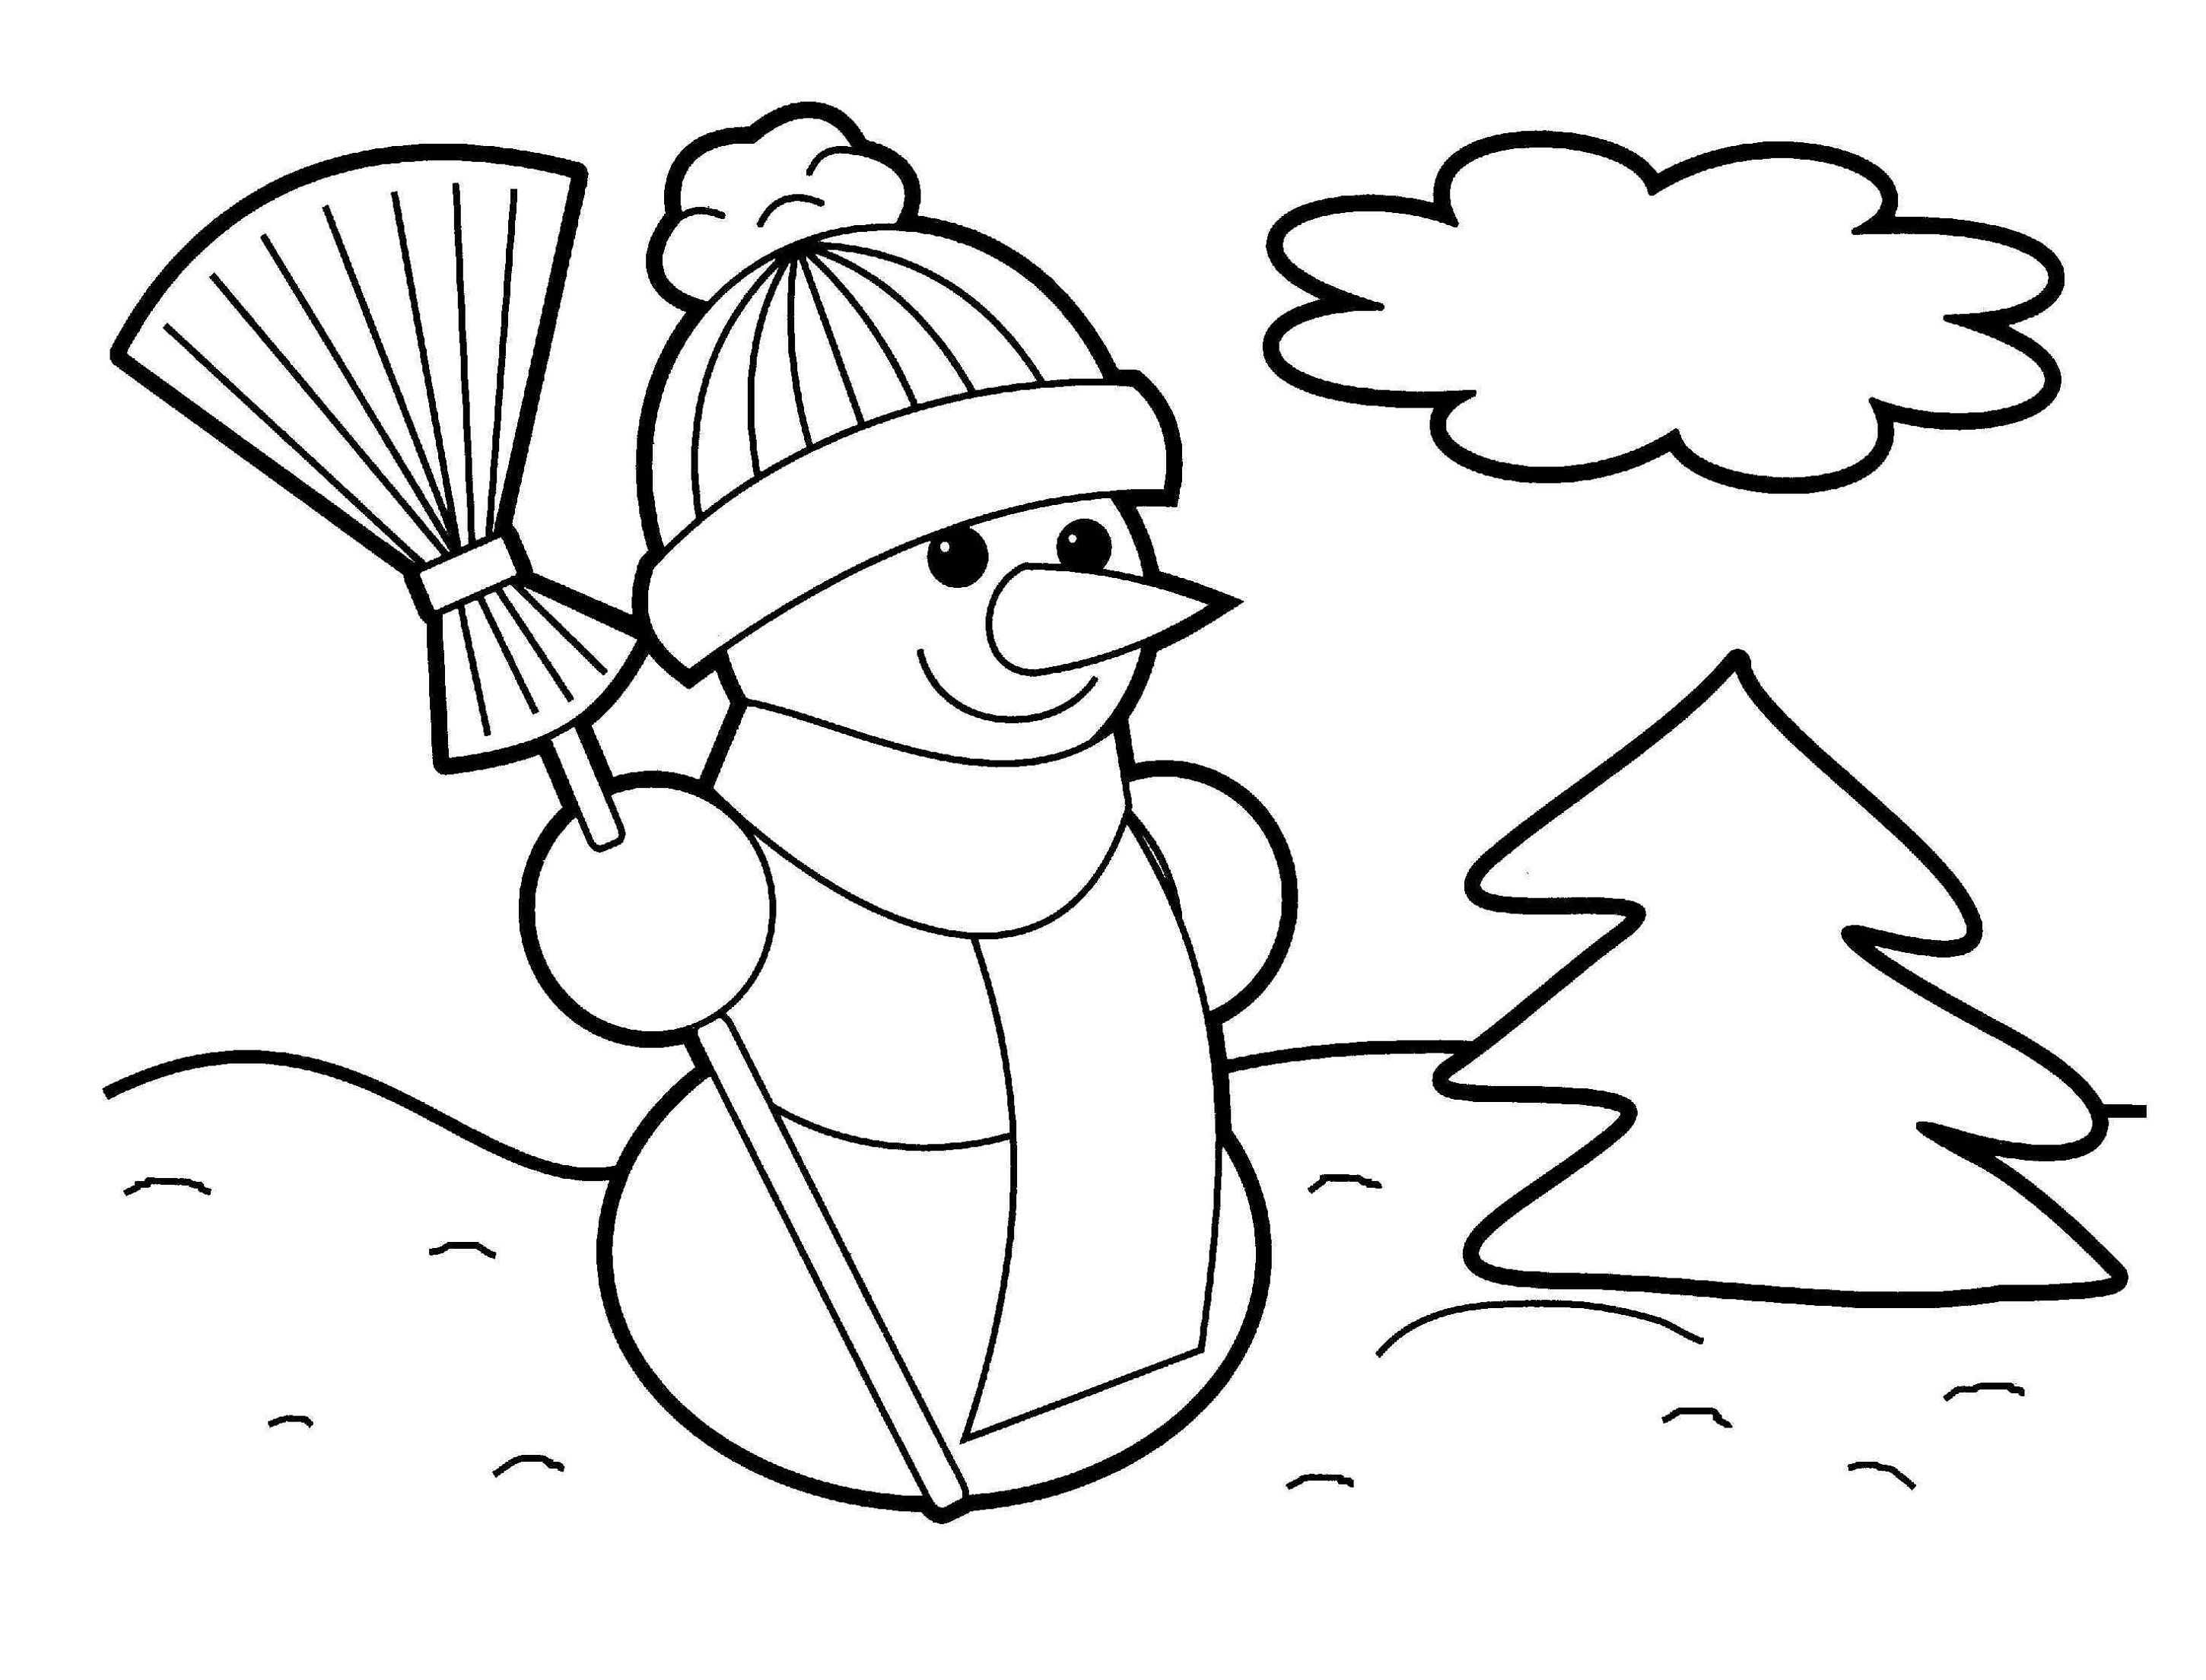 christmas coloring pages for kids | learning printable | coloring